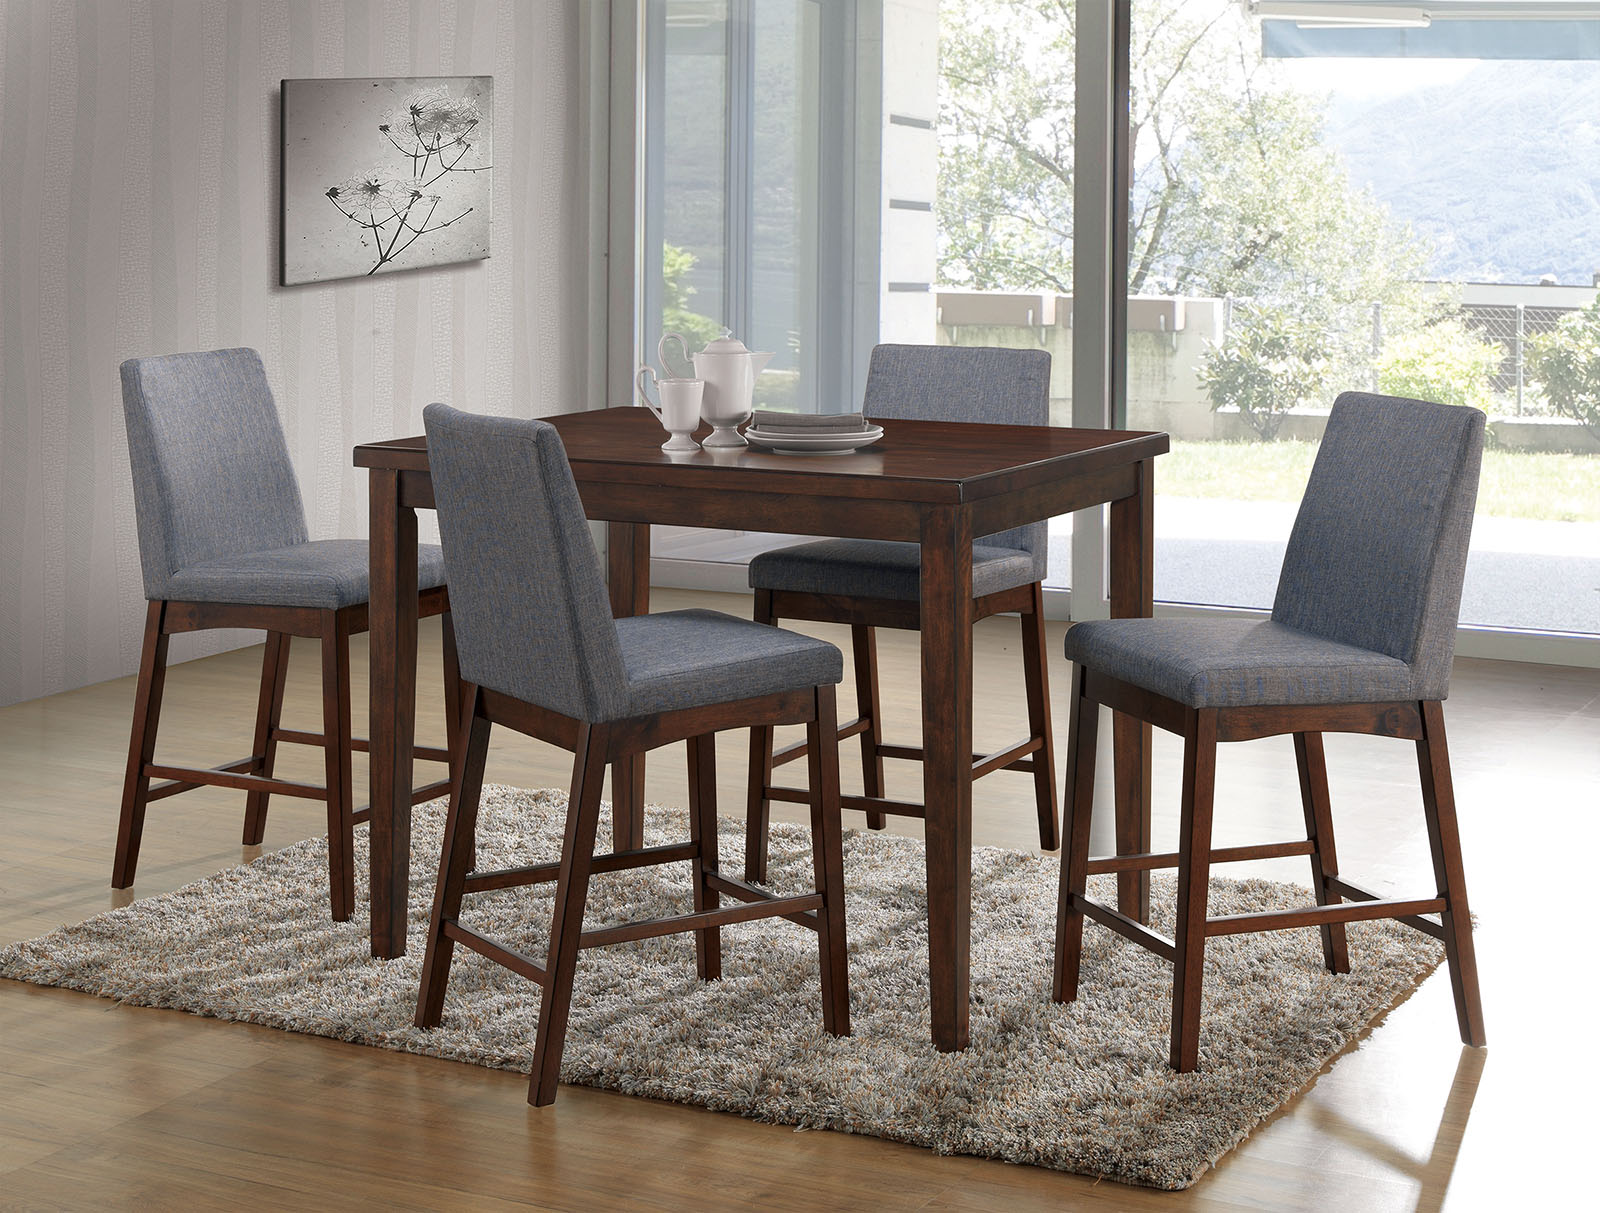 Picture of: Marten Mid Century Natural Tone Pub Table Collection Las Vegas Furniture Store Modern Home Furniture Cornerstone Furniture